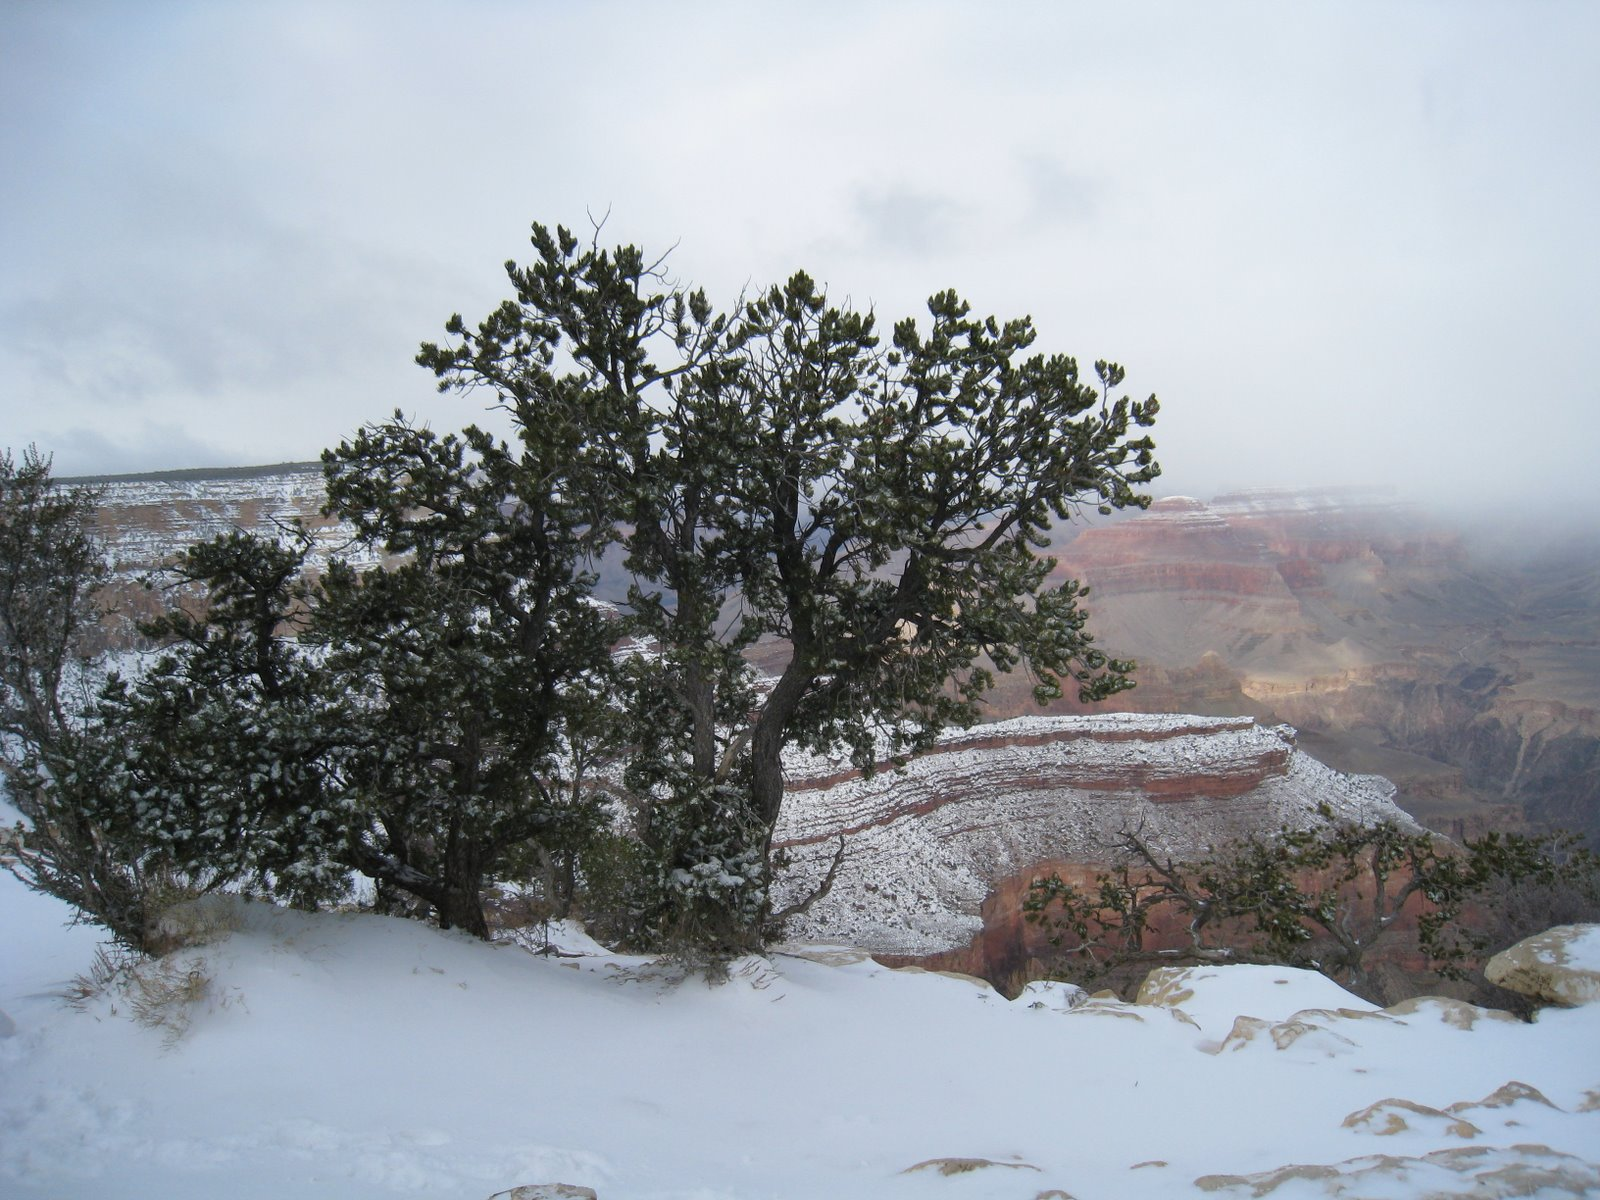 View from the Yavapai Point